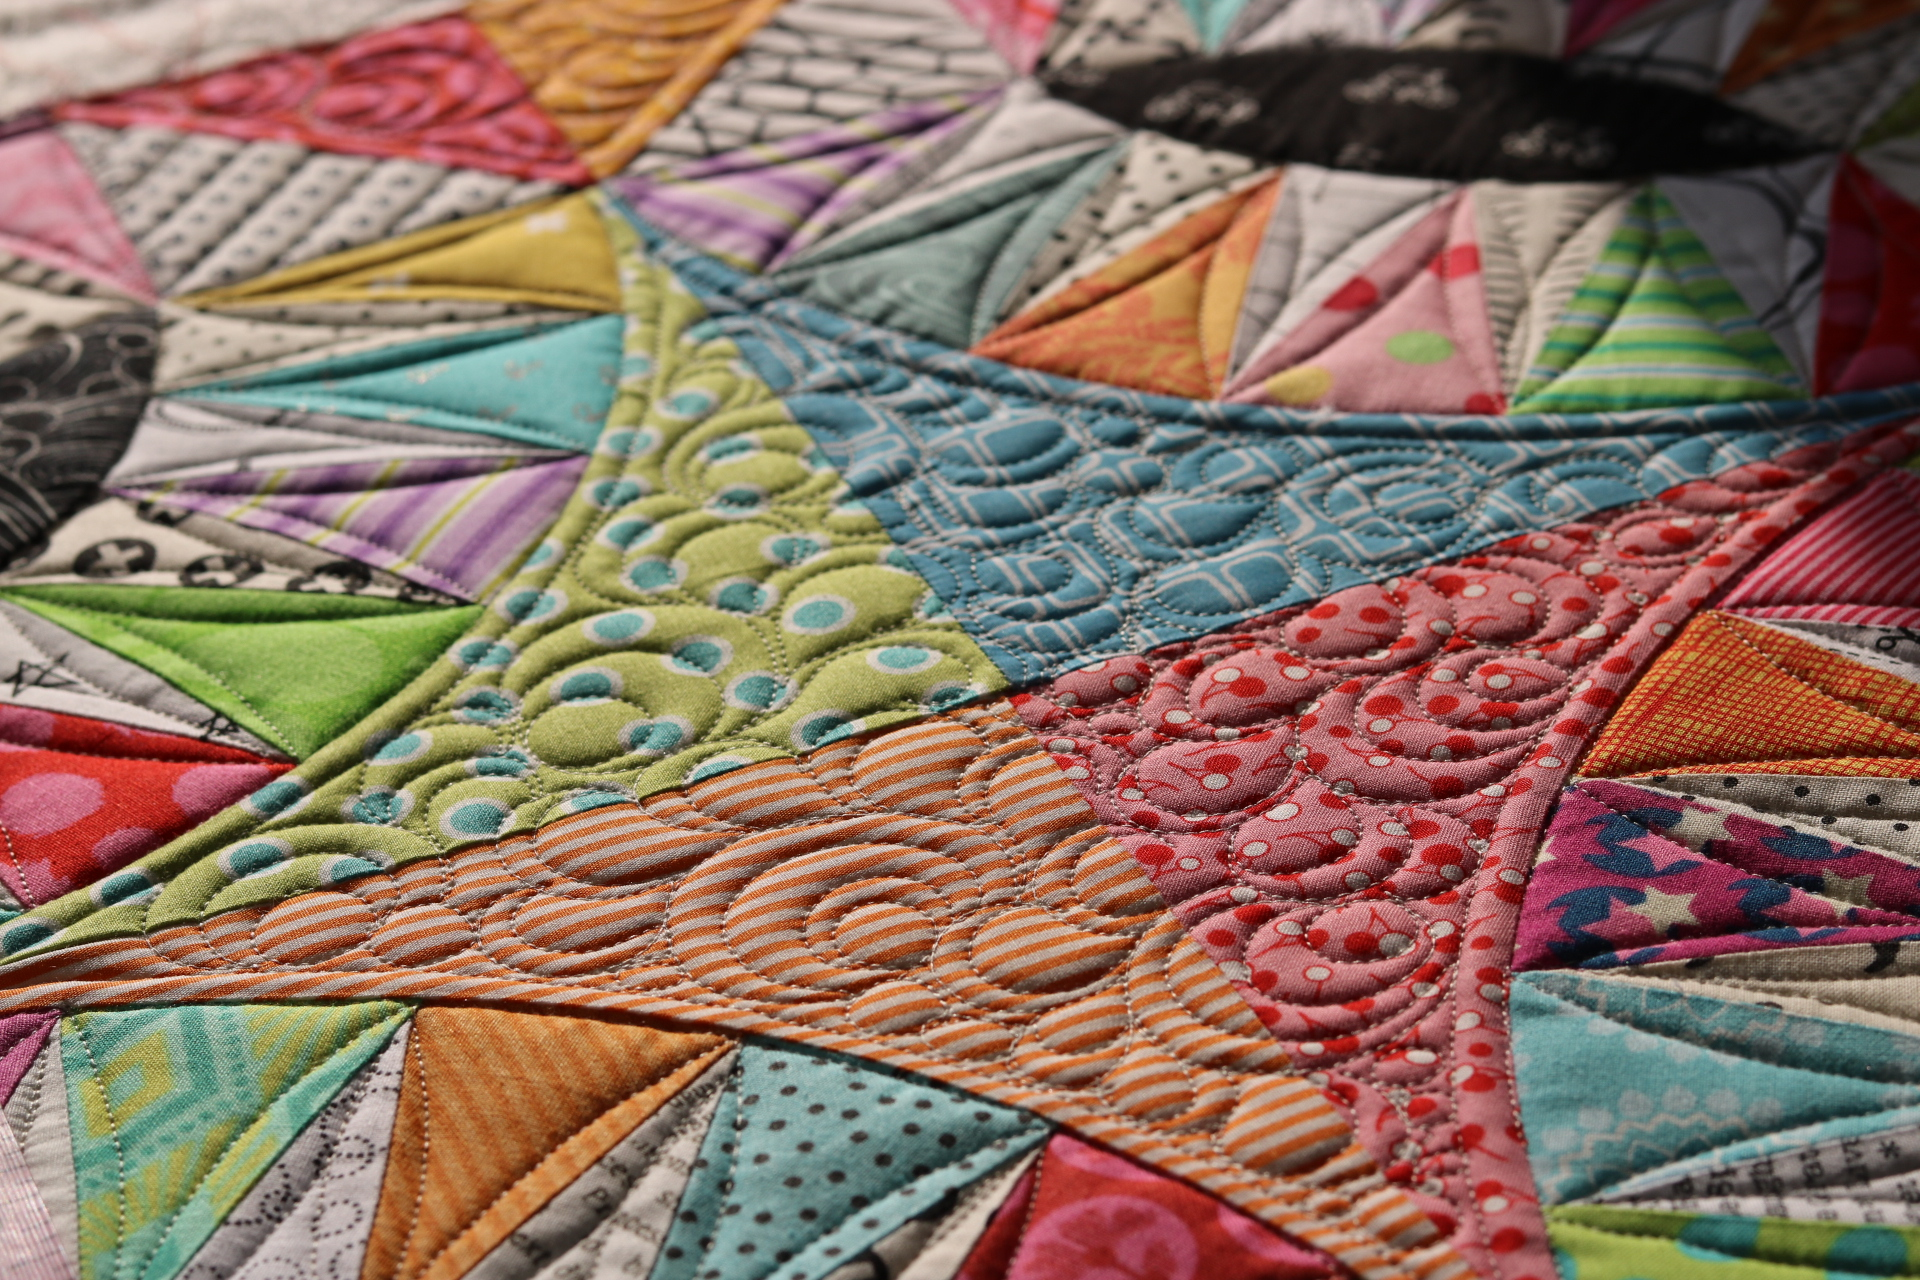 Emma S Pickled Orange Peel Quilt Free Bird Quilting Designs